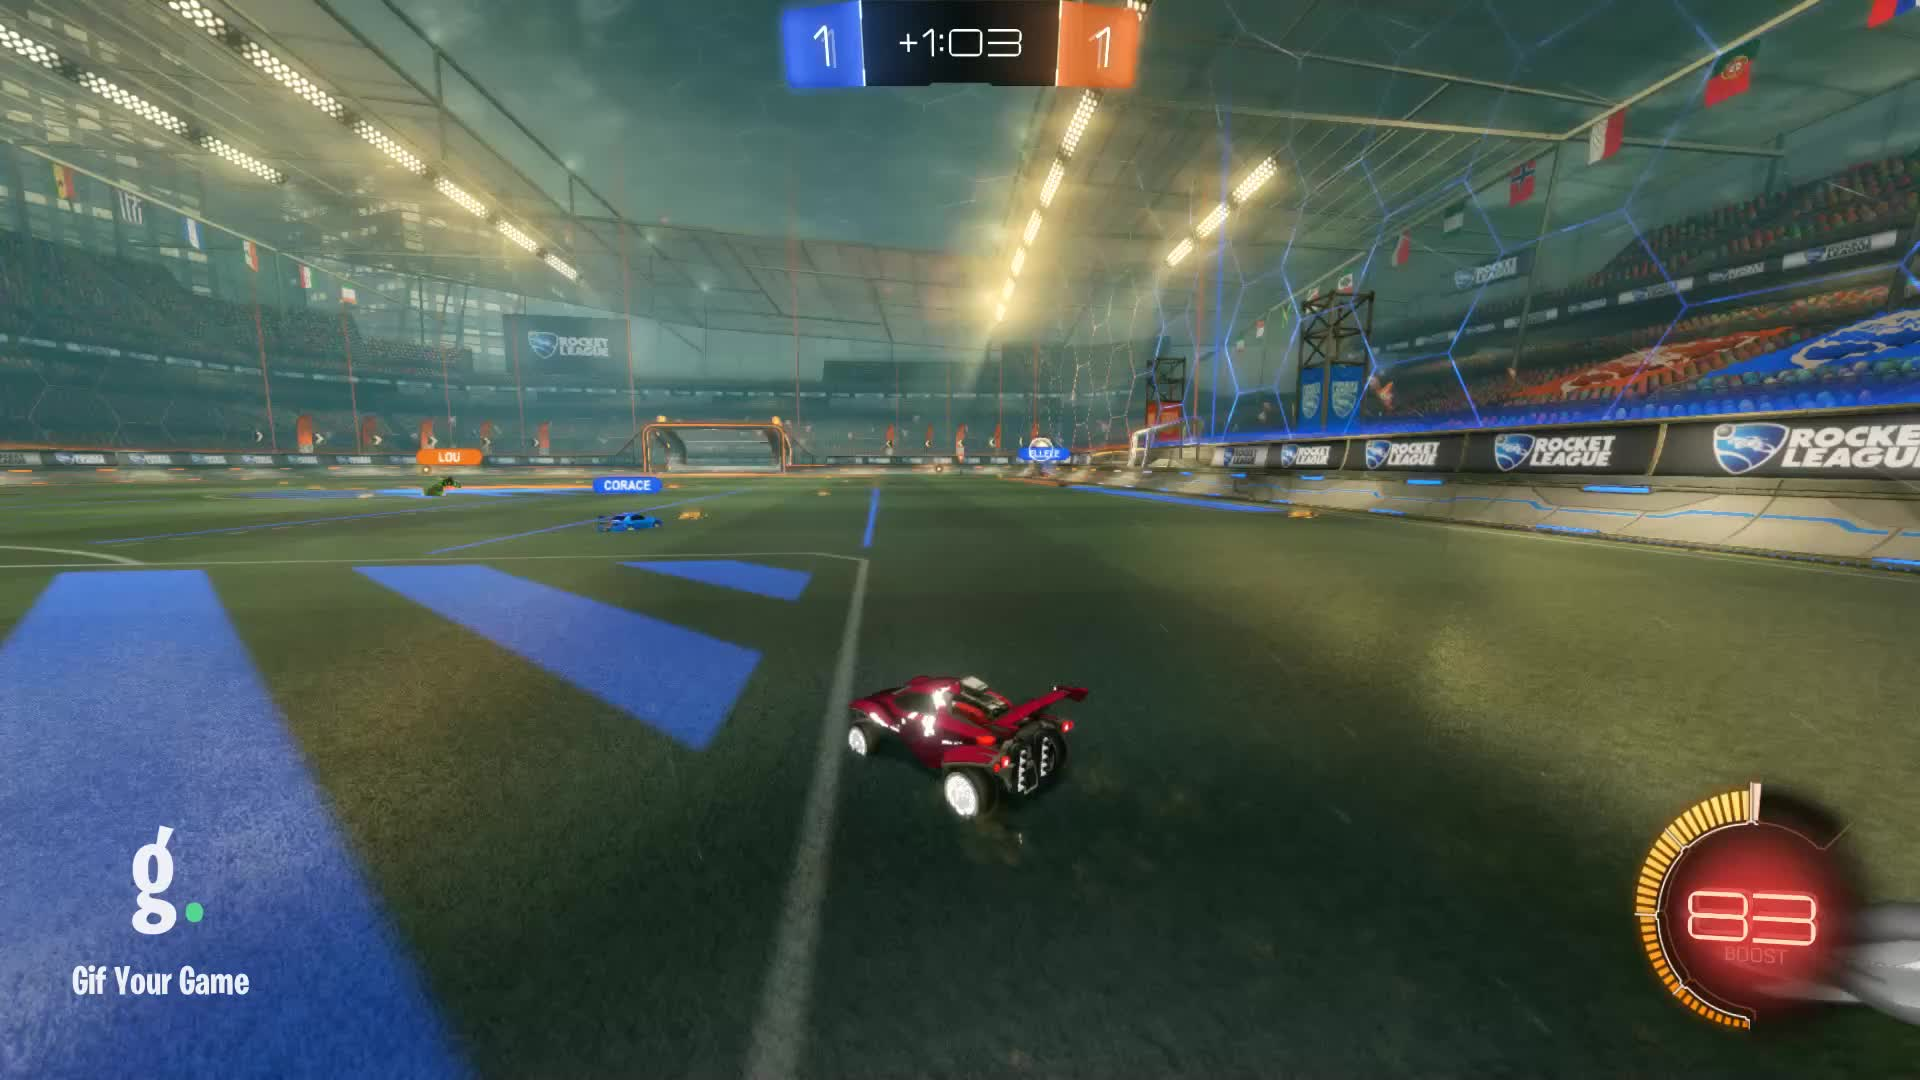 Gif Your Game, GifYourGame, Goal, Rocket League, RocketLeague, arin on salvia, Goal 3: arin on salvia GIFs